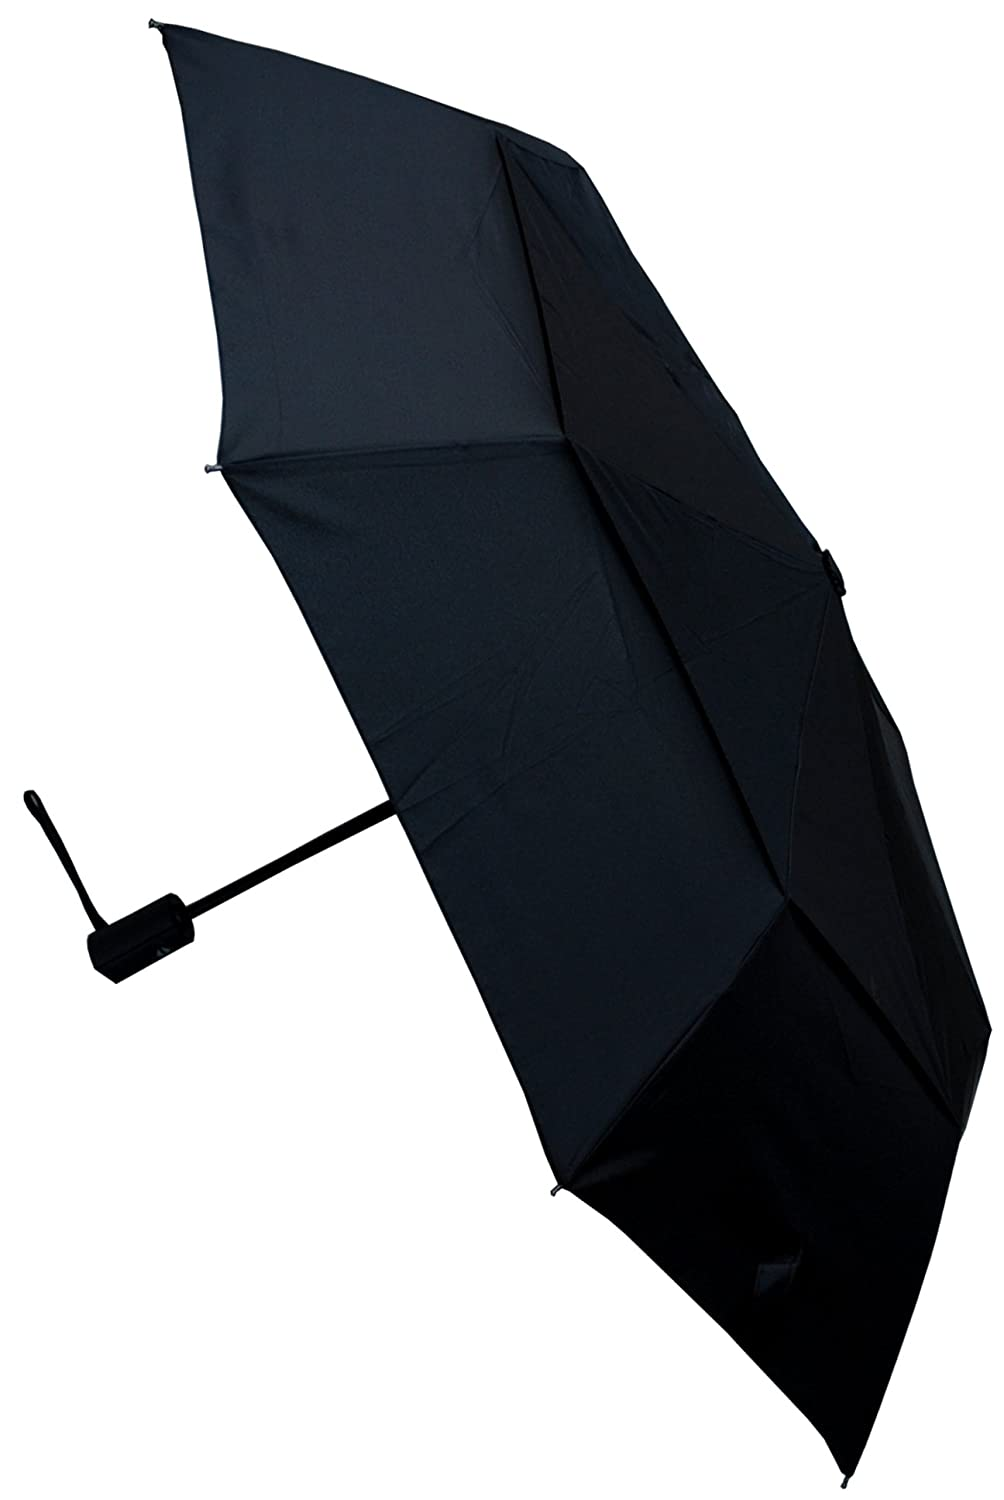 Collar and Cuffs London - Windproof - Compact Yet Strong - Reinforced Frame with Fiberglass - StormDefender Compact Small Folding Umbrella - Vented Double Layer Canopy - Auto Open and Close - Black CCLSTORMPUMB10239